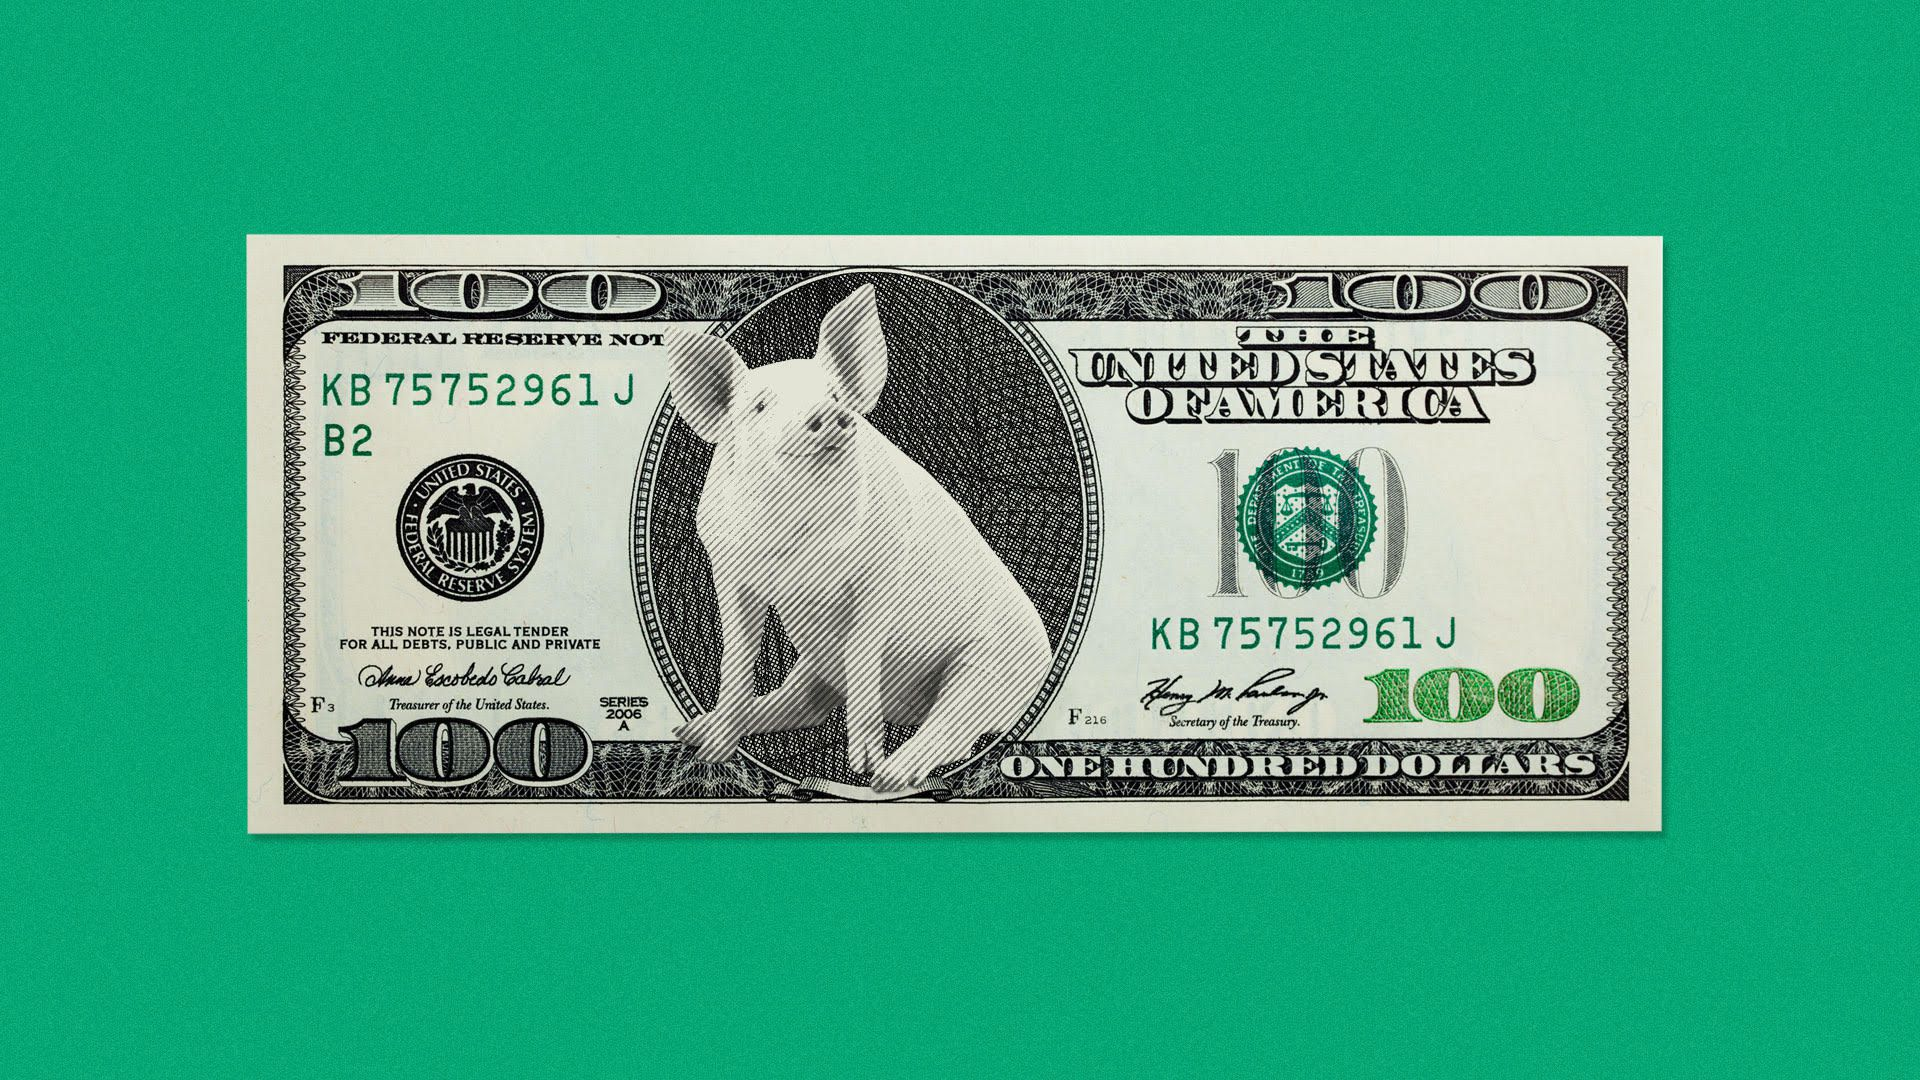 Illustration of a pig on a $100 bill